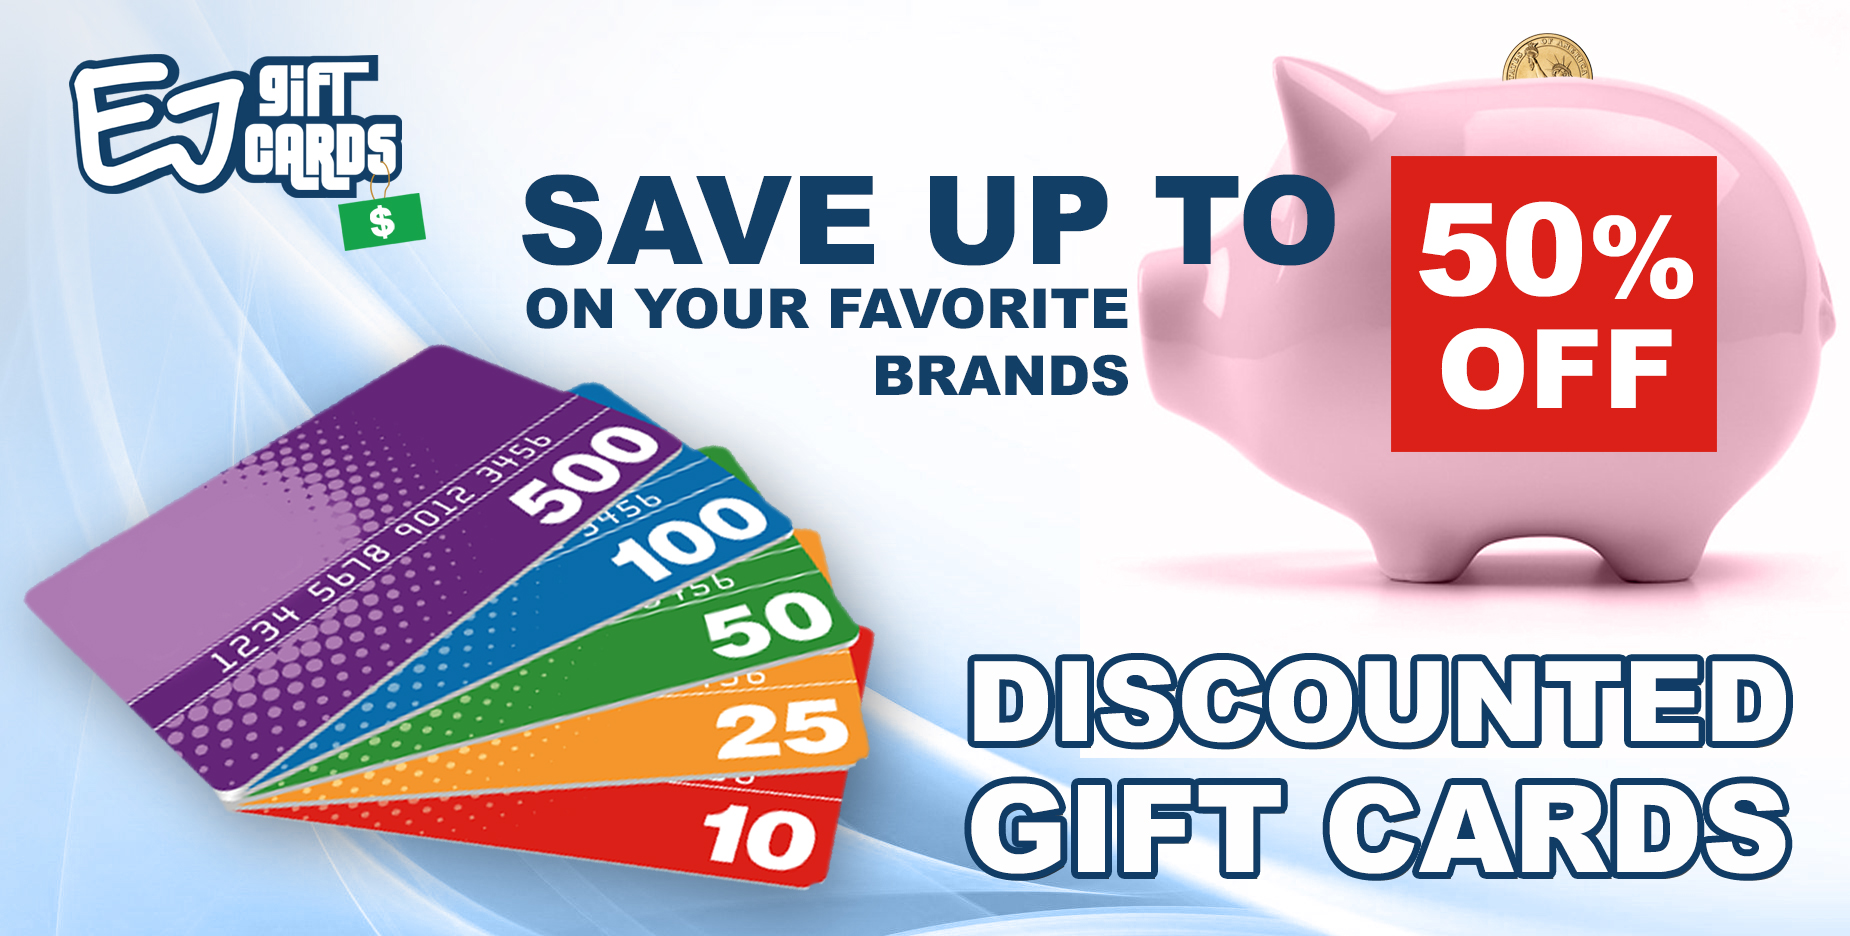 736e844b5d8 Buy Gift Cards | EJ Gift Cards